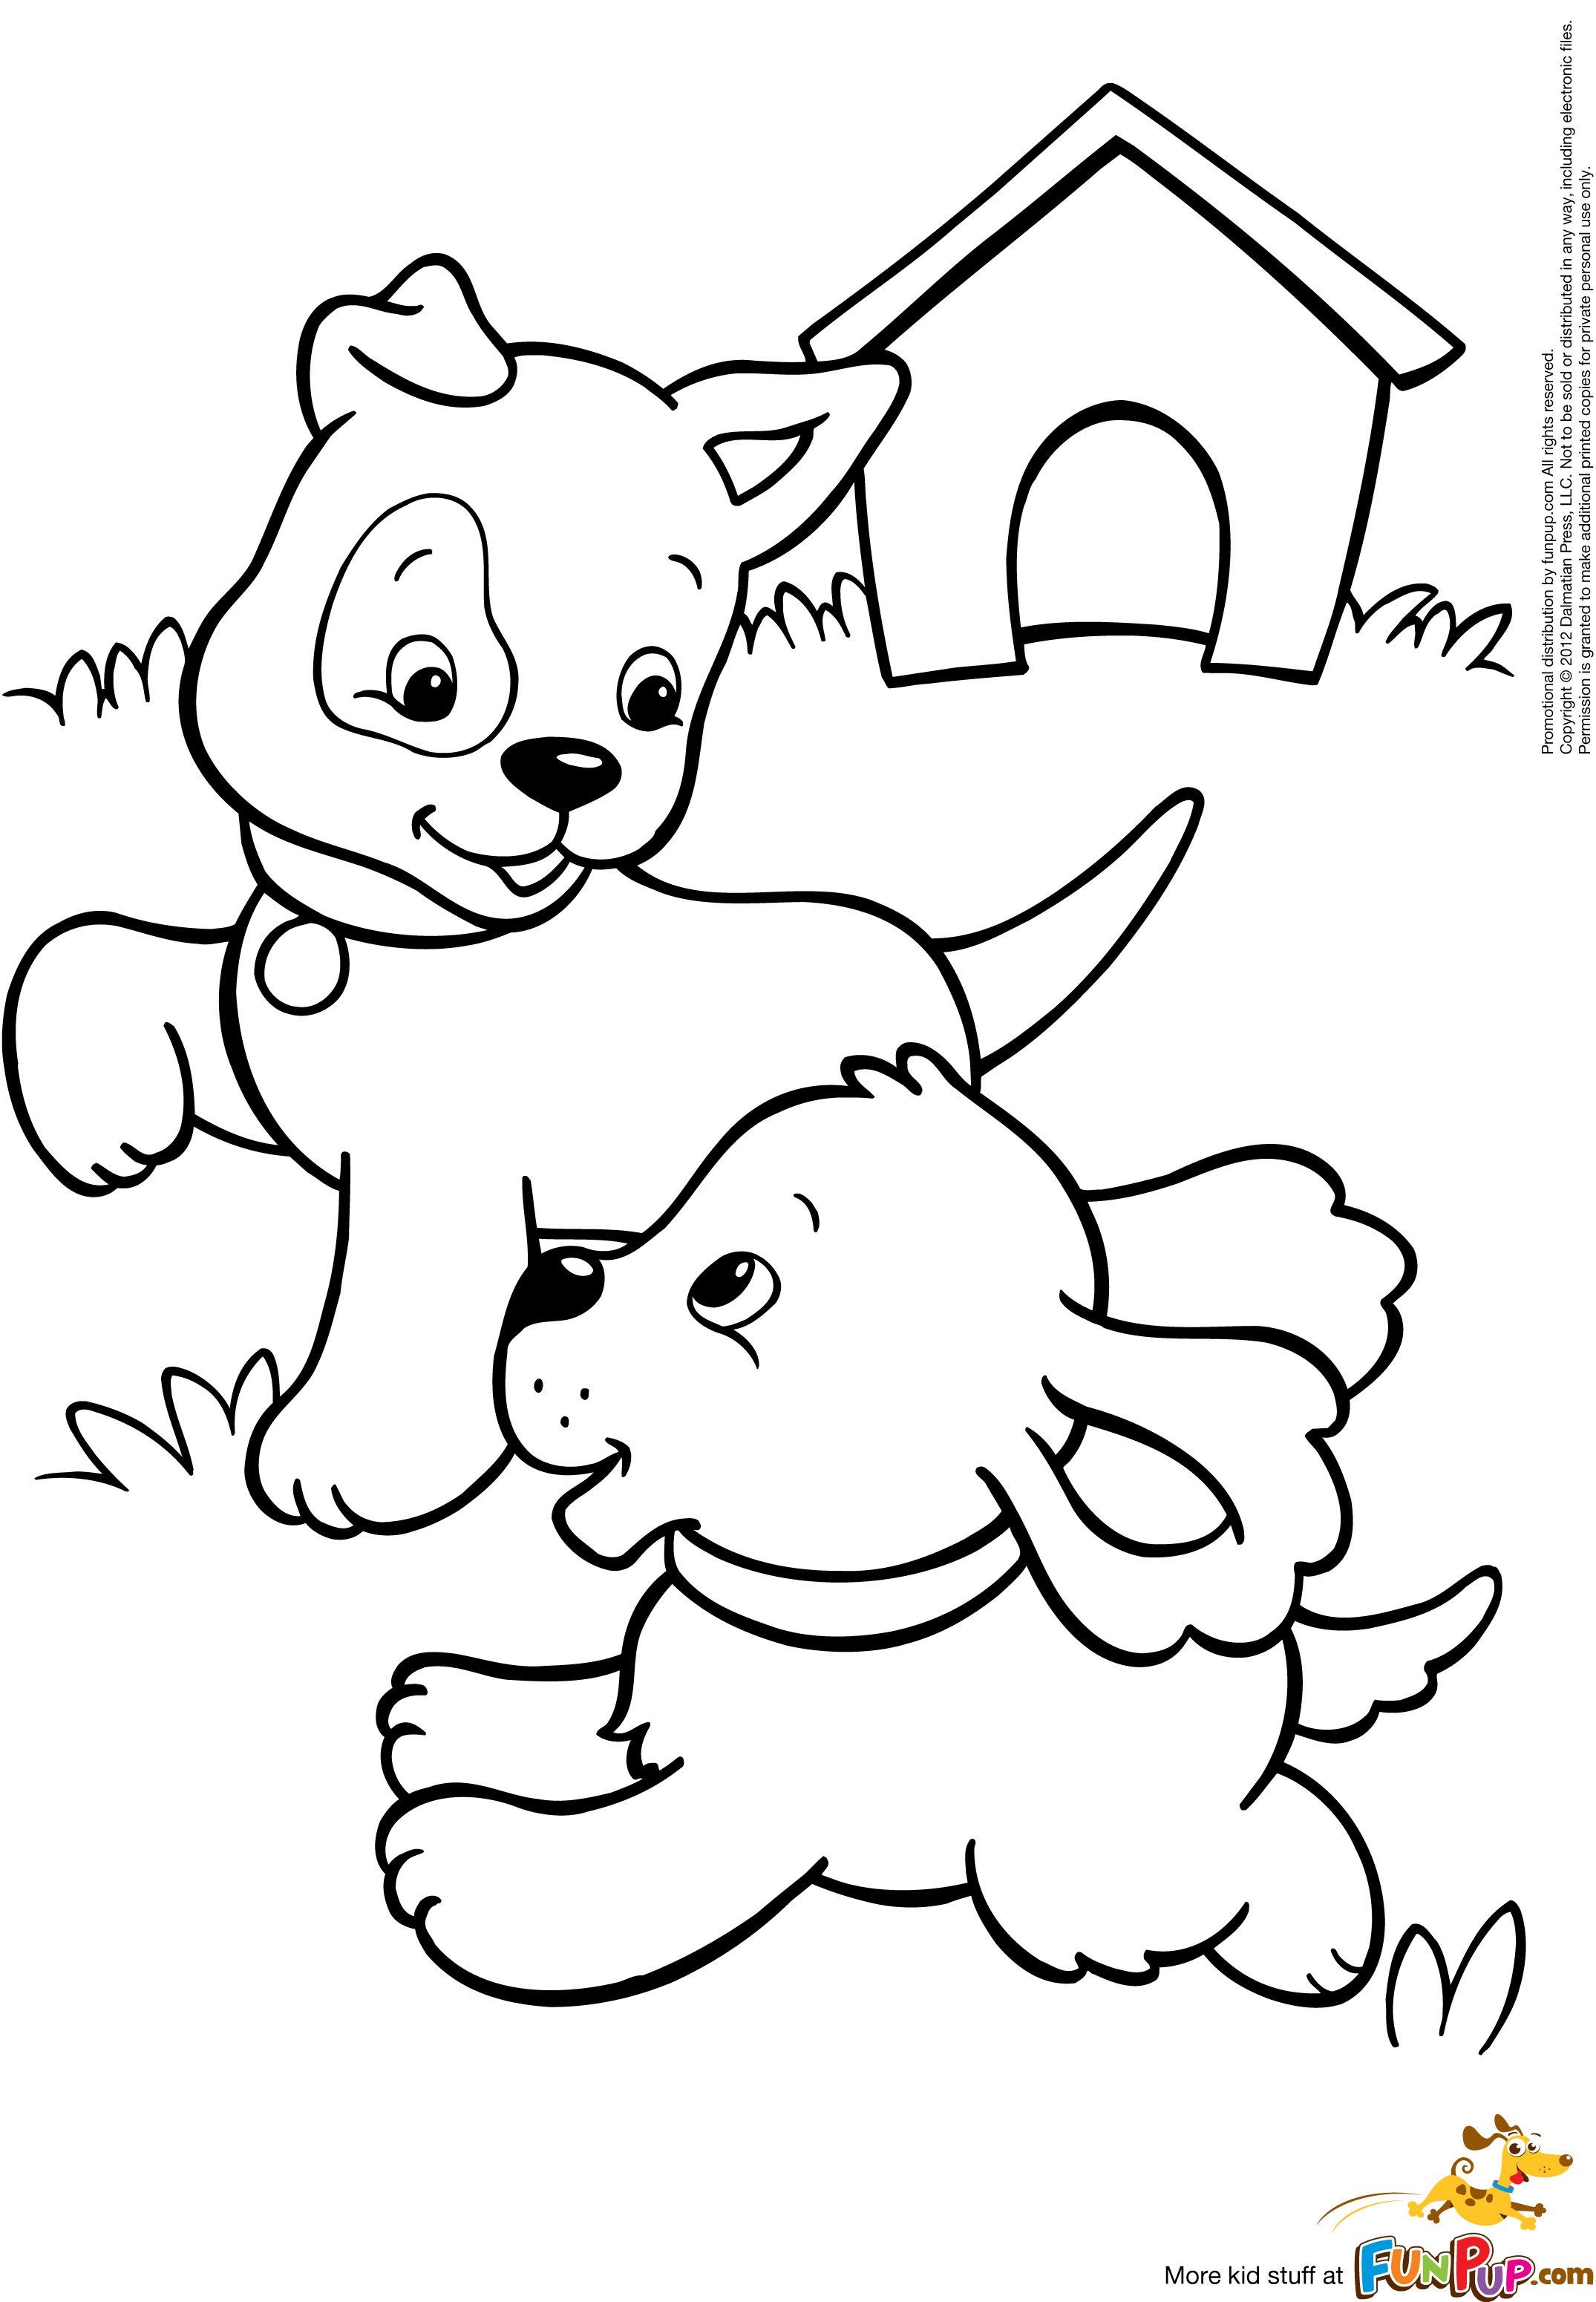 Realistic puppy coloring pages download and print for free for Coloring pages of dogs